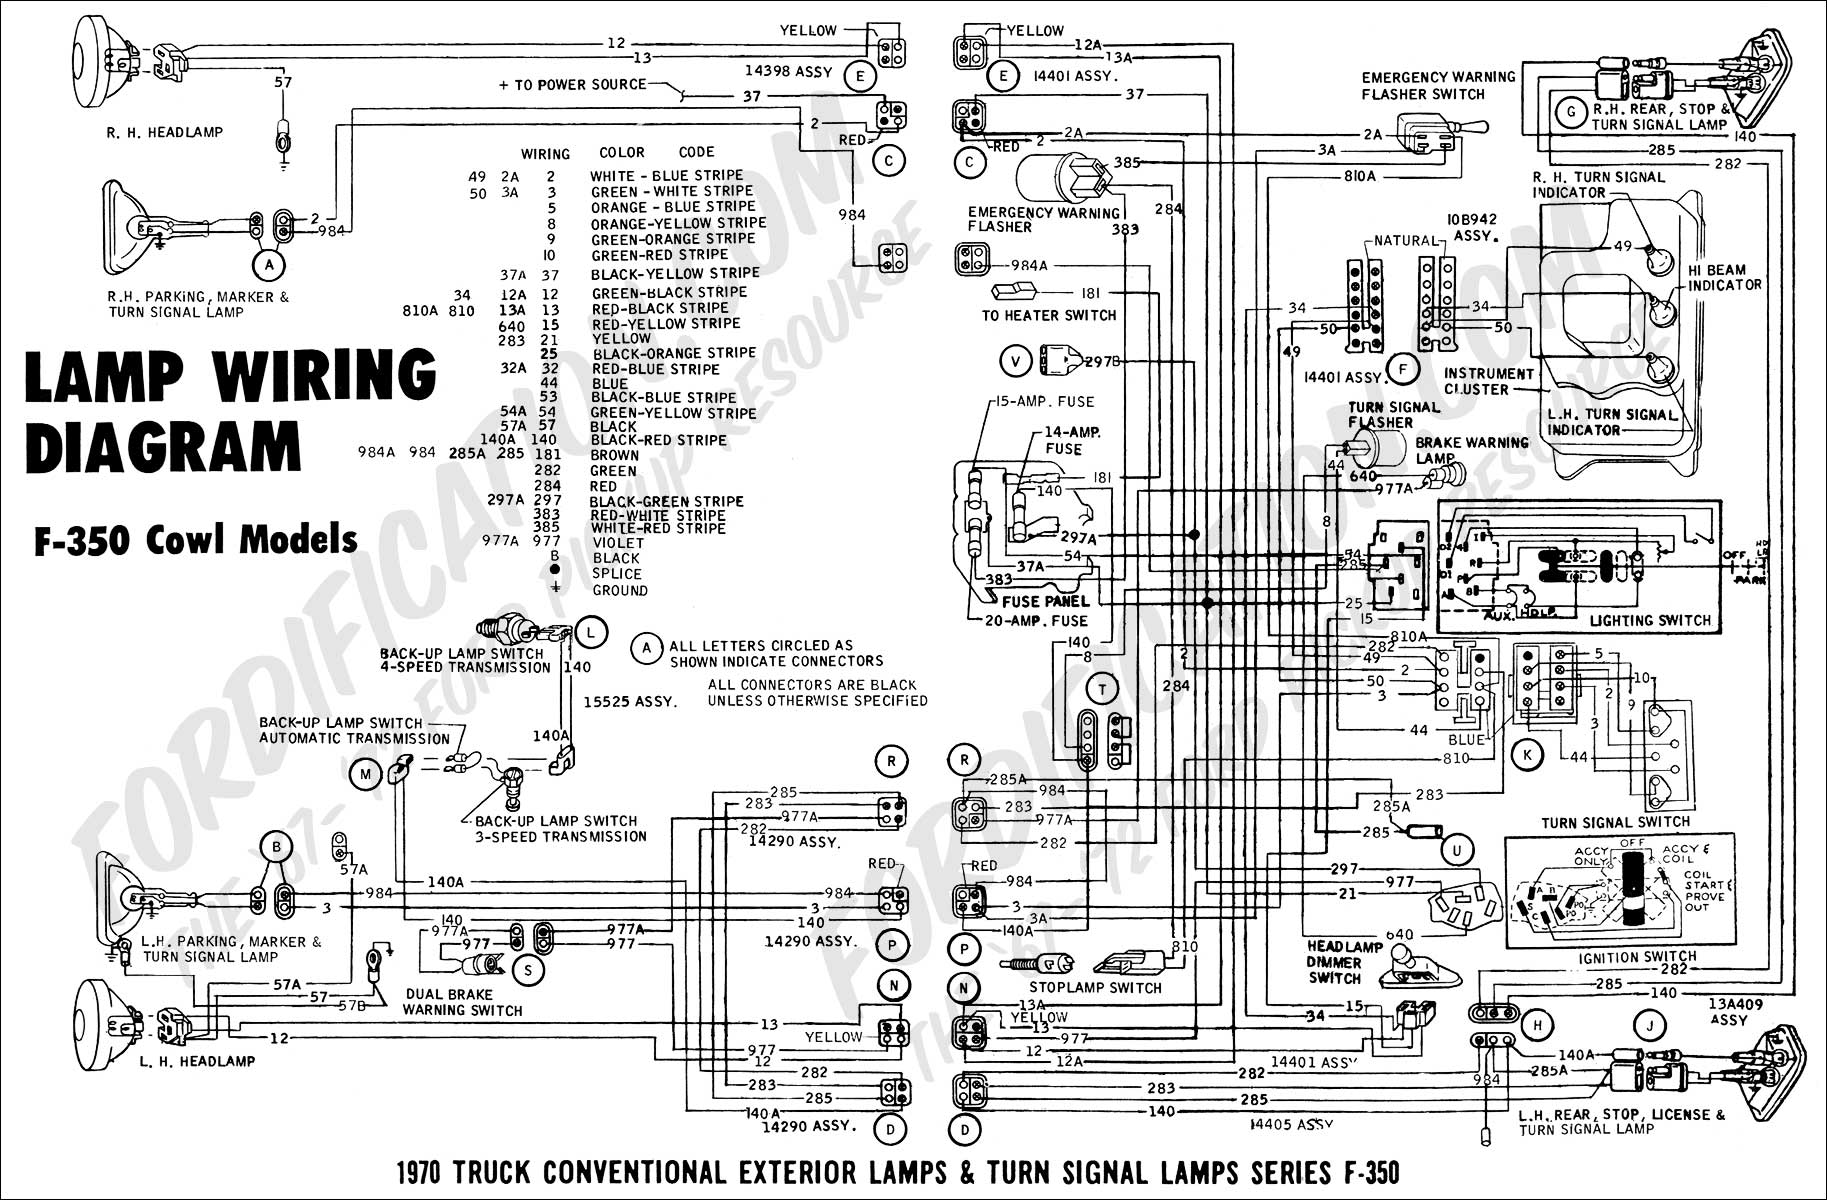 1997 ford f 350 wiring diagram wiring diagram for 1997 ford f350 the wiring diagram 2002 ford wiring diagram 2002 wiring diagrams